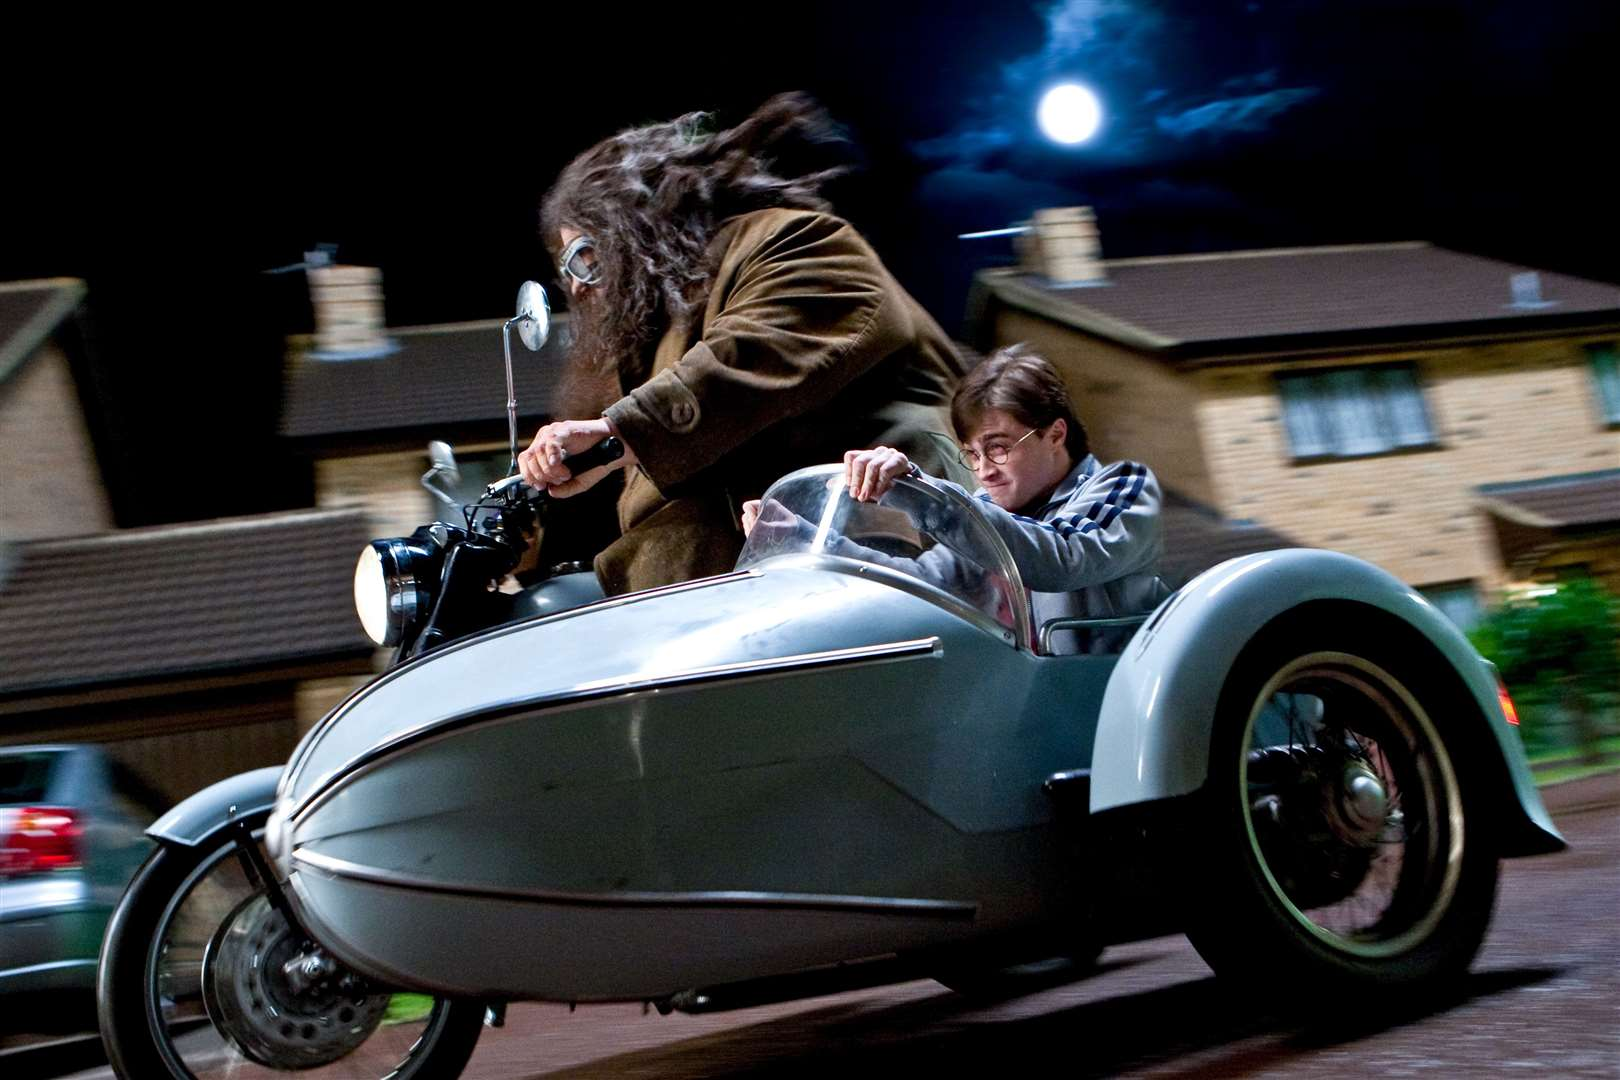 Hagrid escorts Harry Potter away from Death Eaters moments before Hedwig dies above Dartford